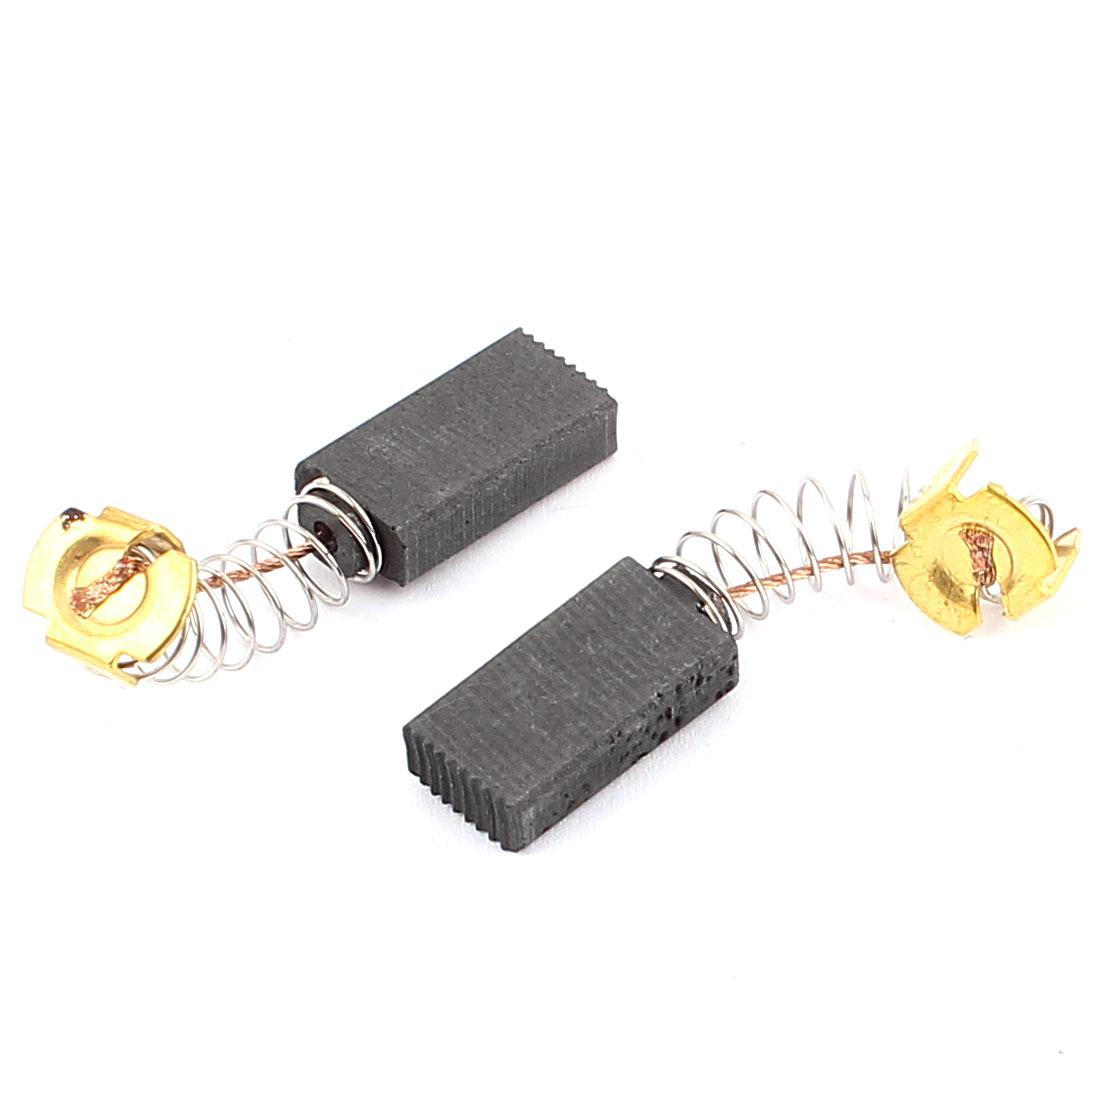 Electric Tool Motor Carbon Brushes Motorcarbon 18mm x 10mm x 5mm 2 Pcs